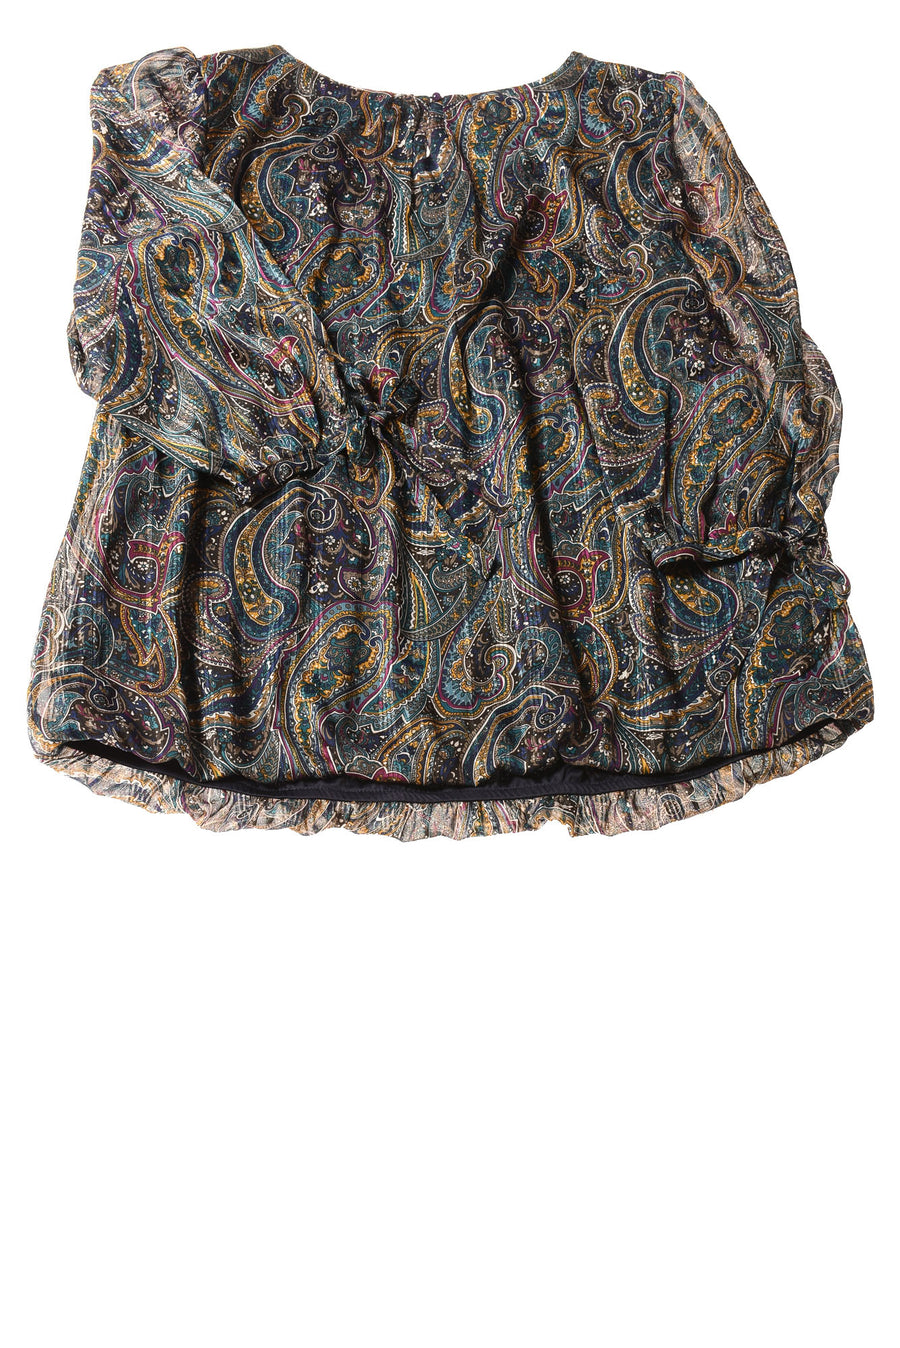 NEW Dressbarn Women's Top 2X Multi-Color Paisley Print